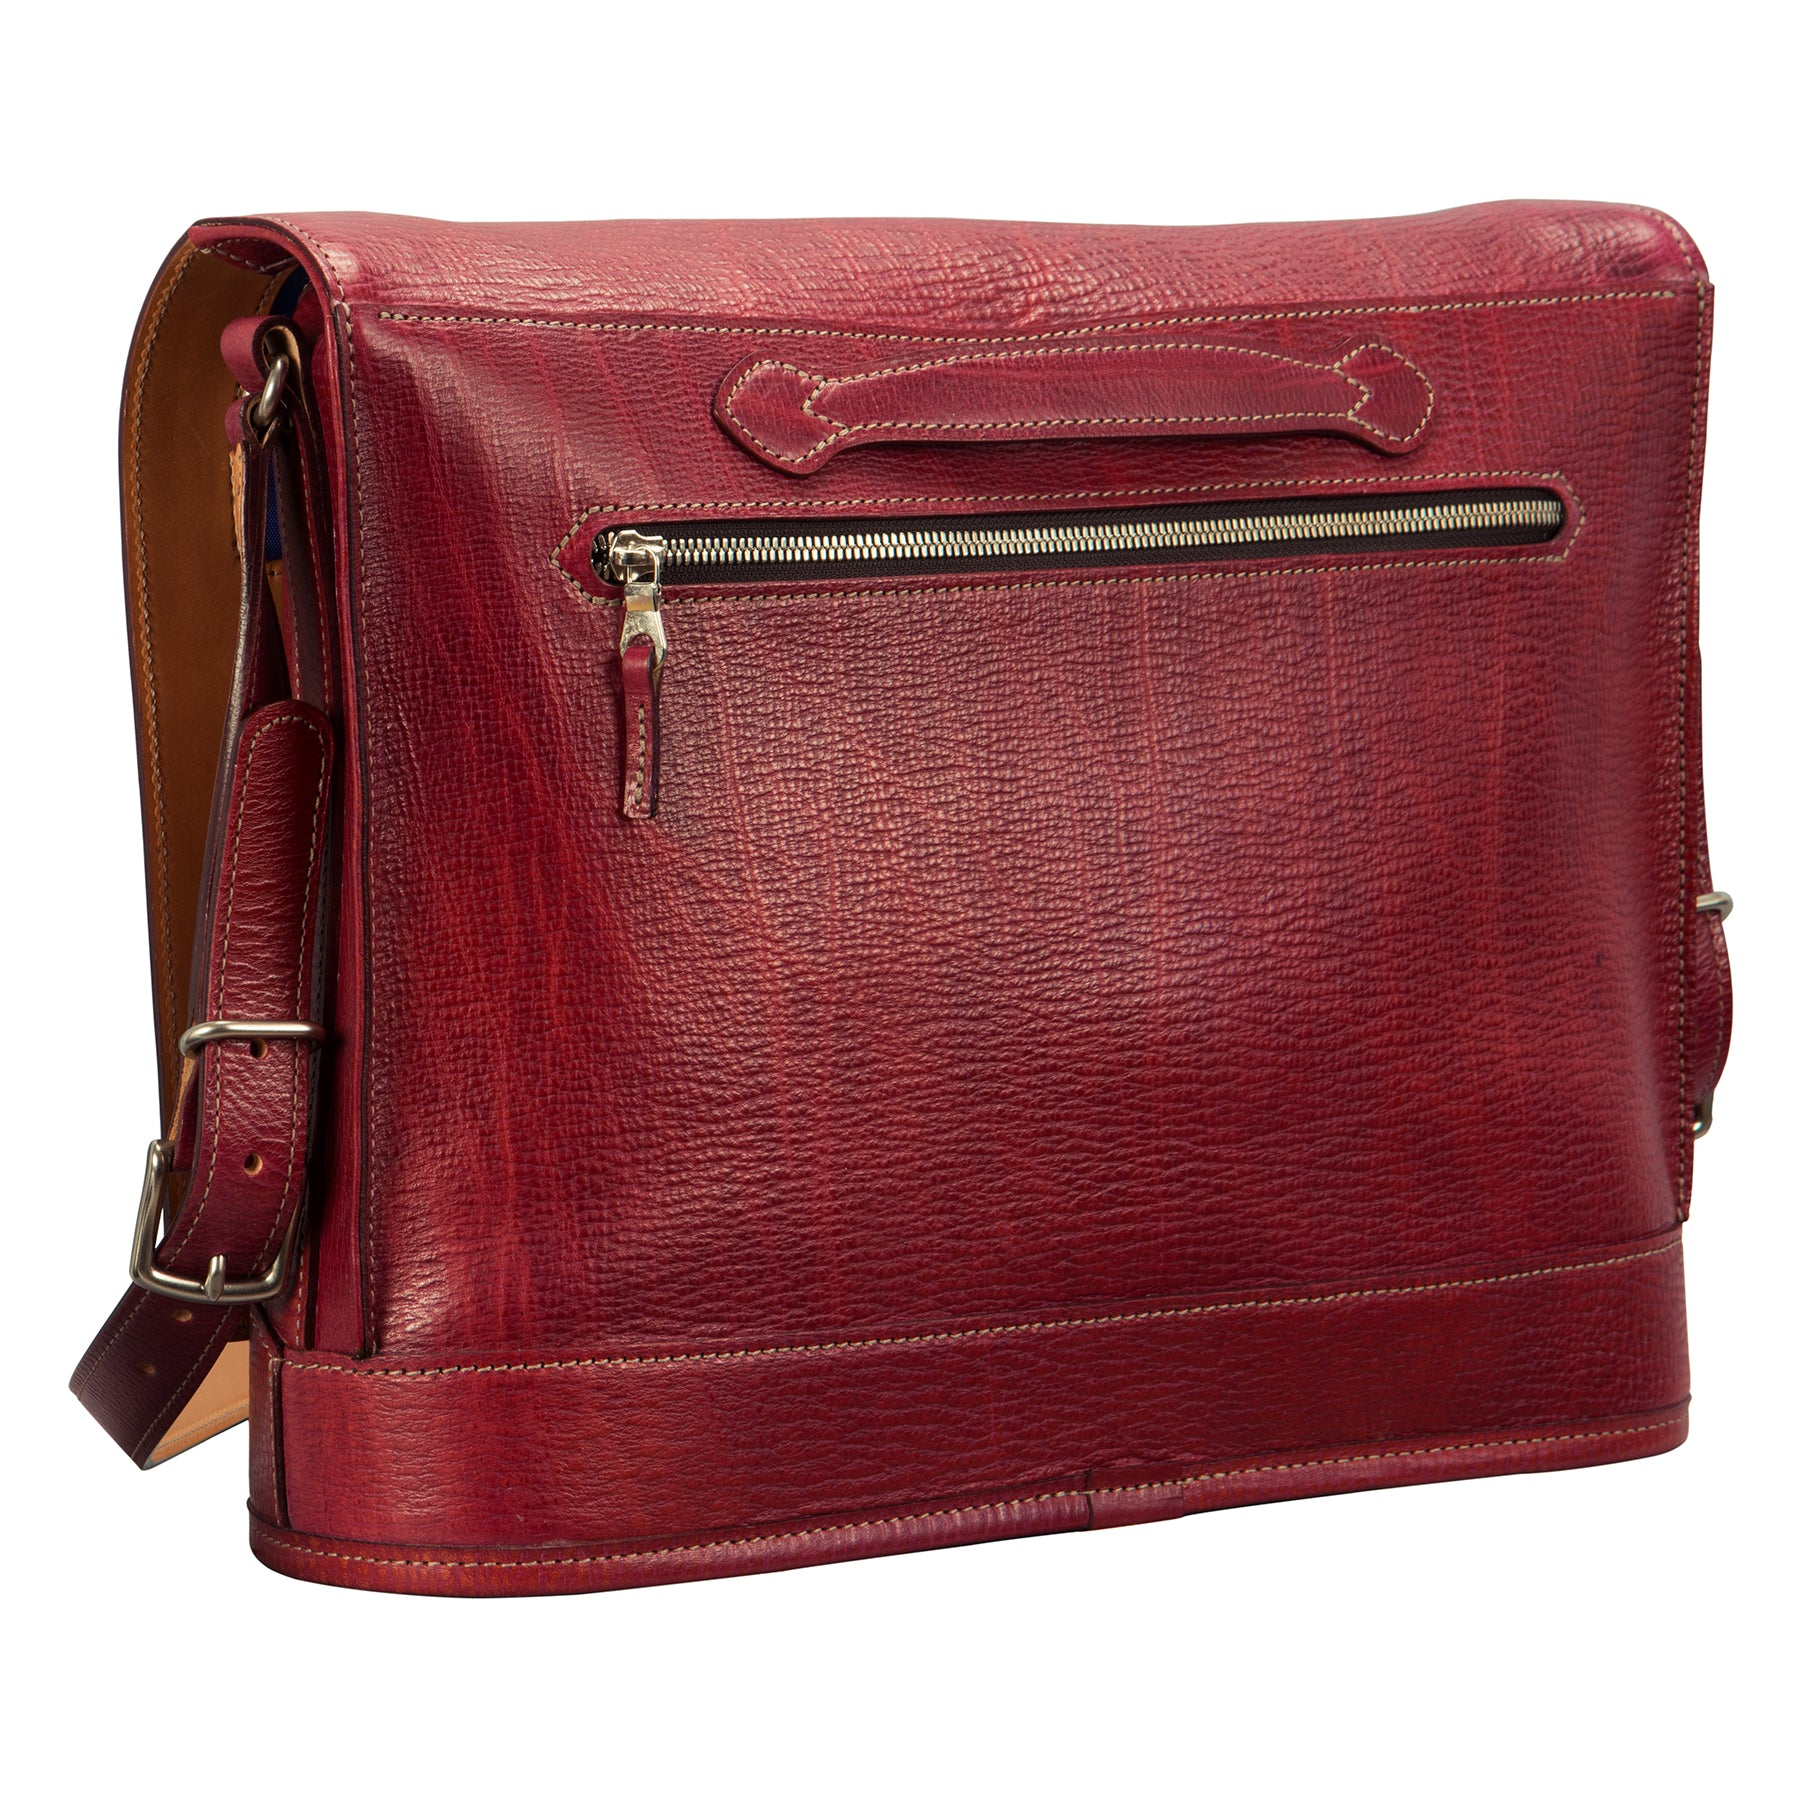 Pedestal flapover bag: hand-grained, hand-colored leather.